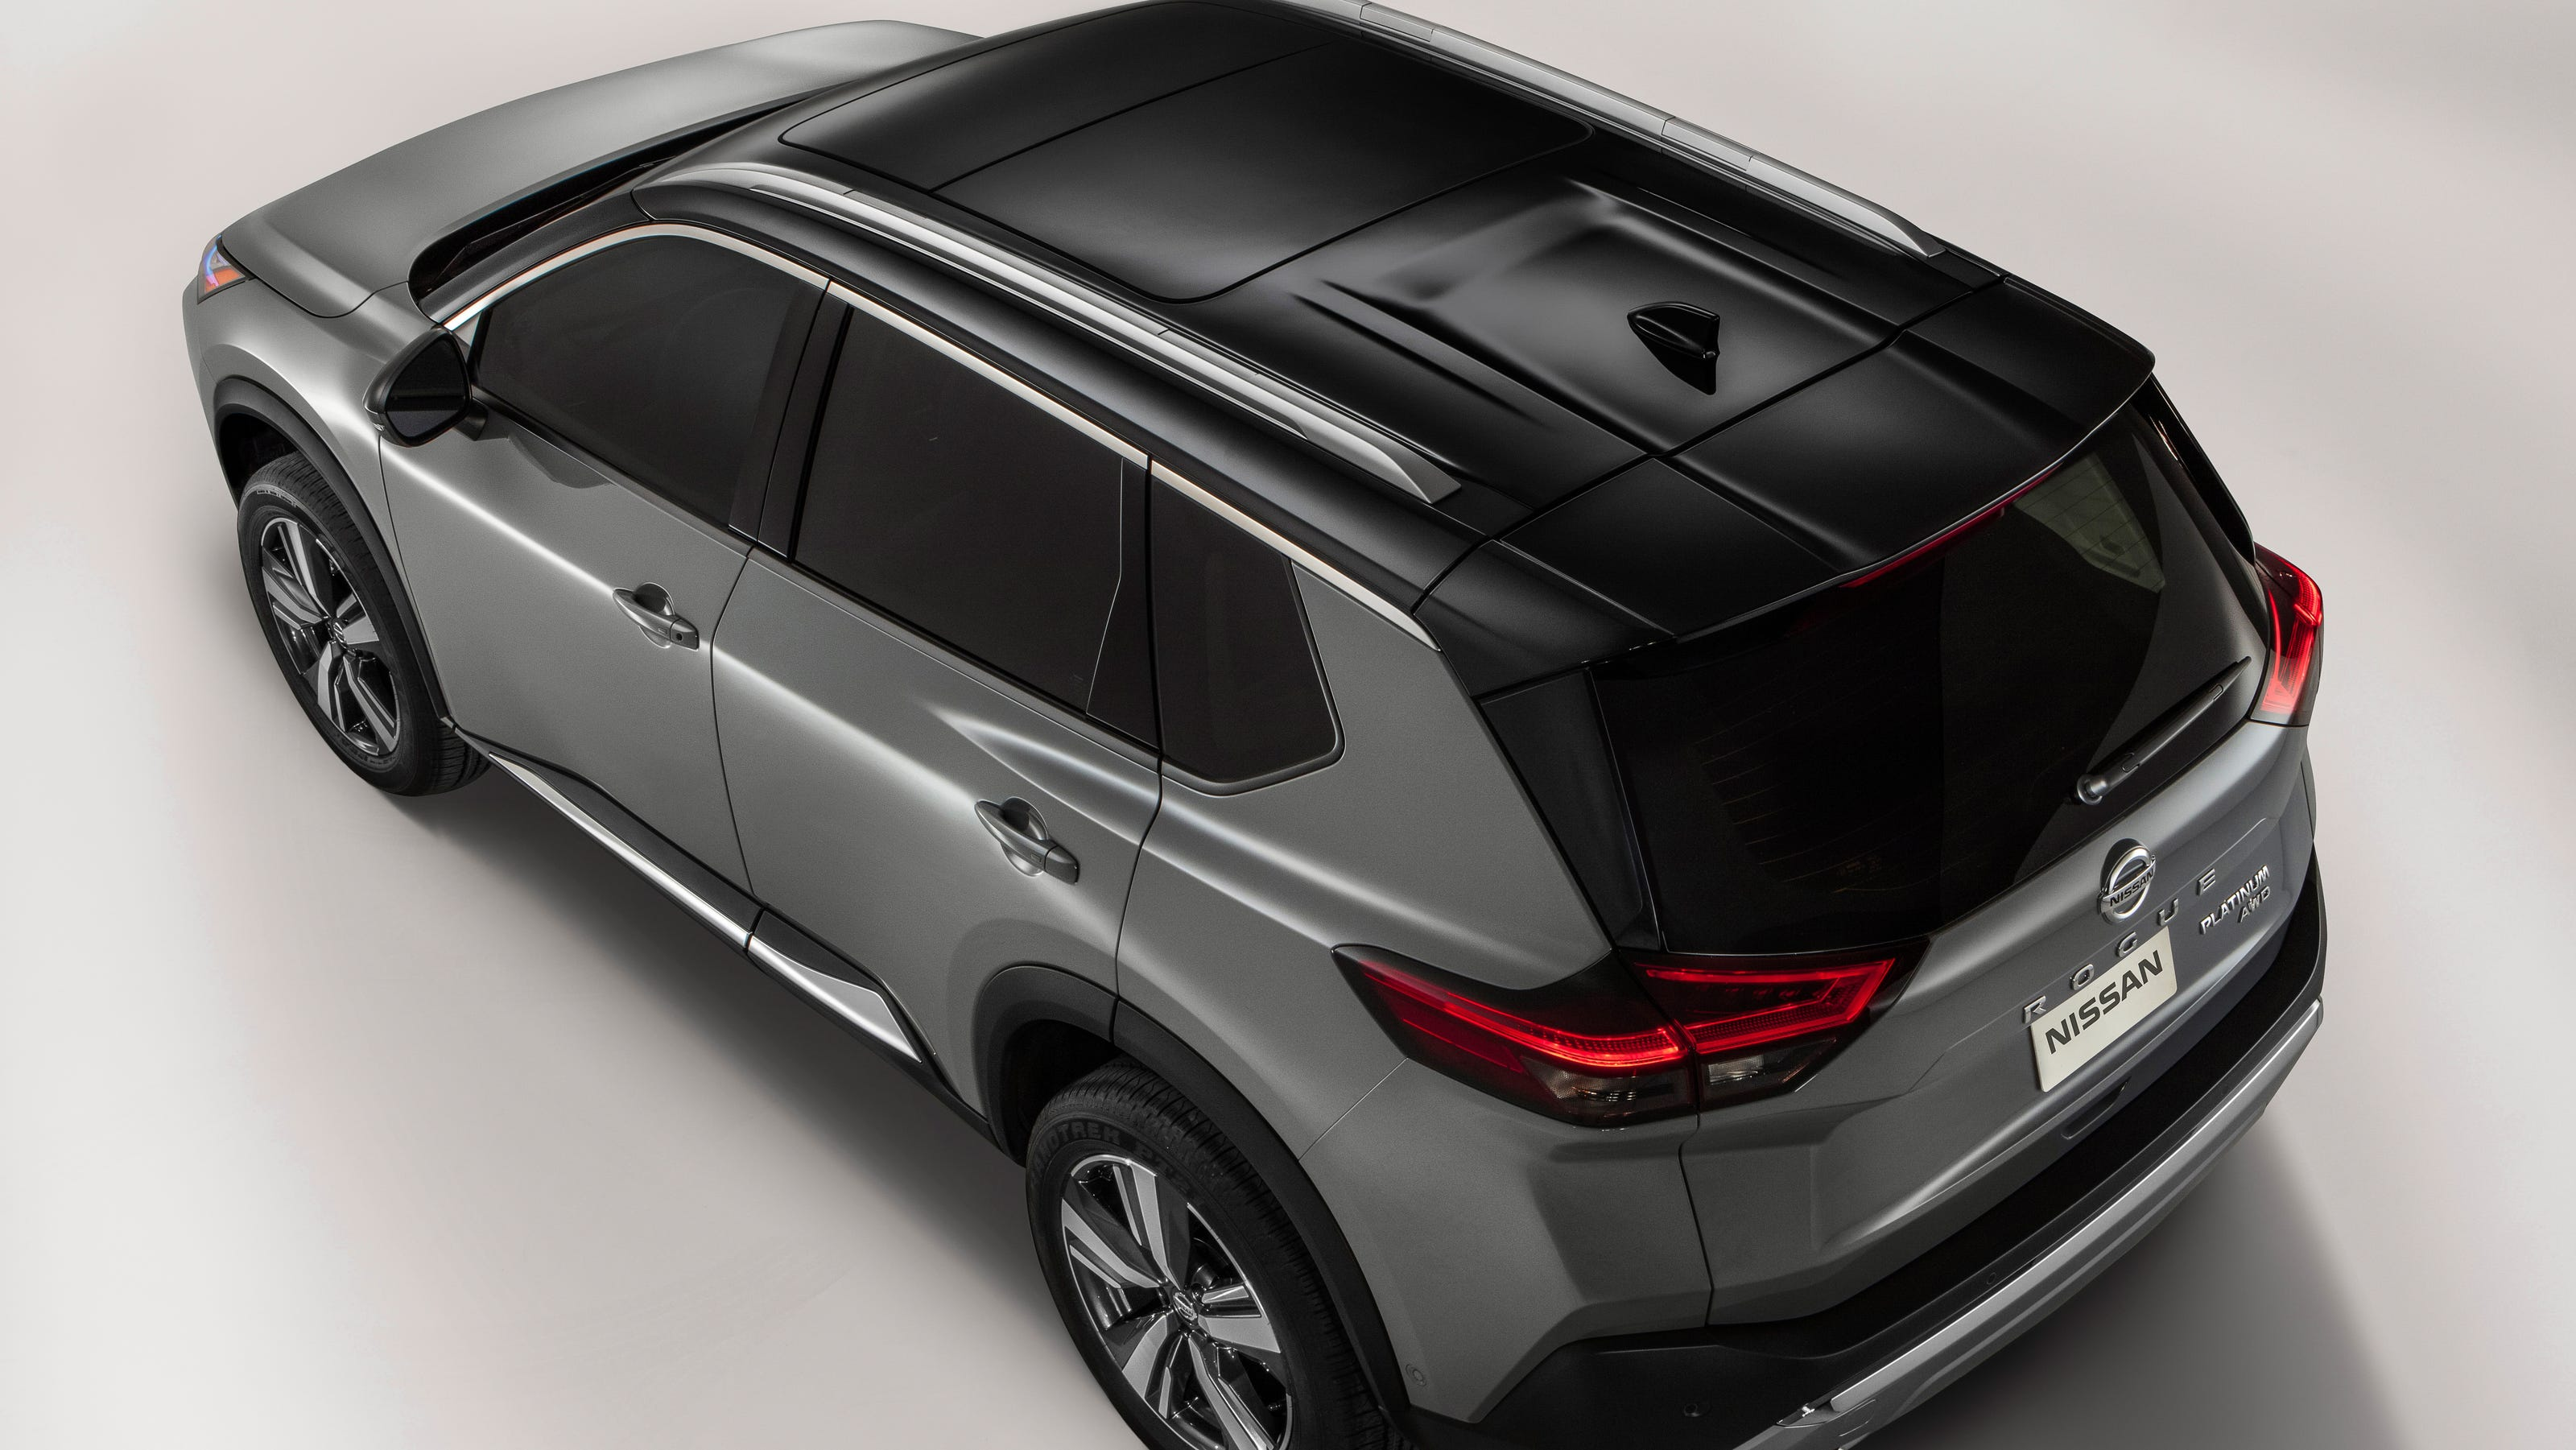 rogue nissan suv redesigned cars